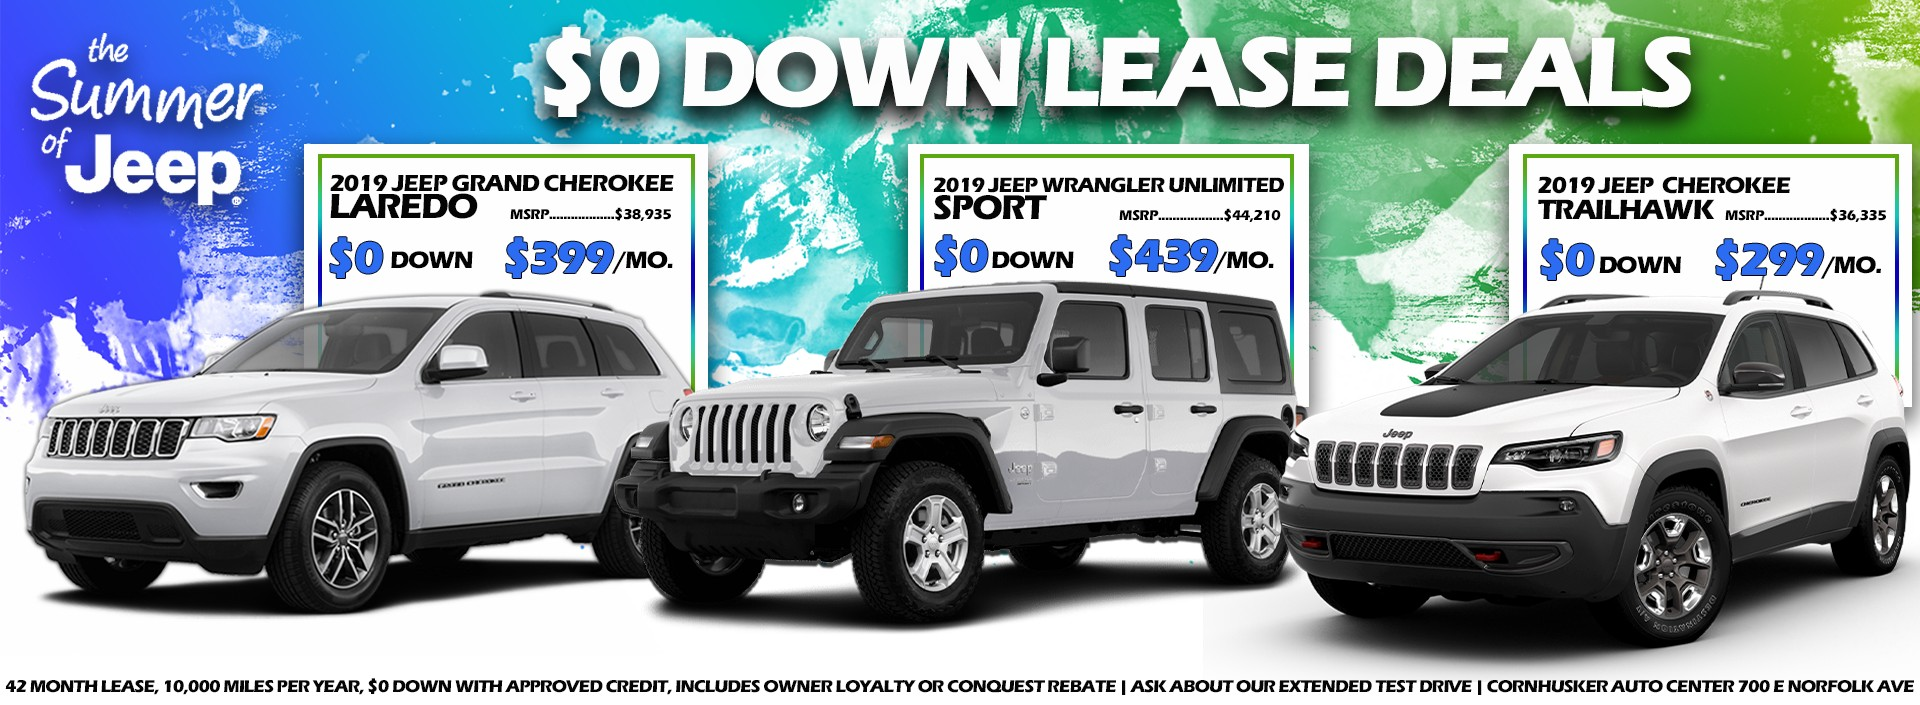 Jeep Lease Deals